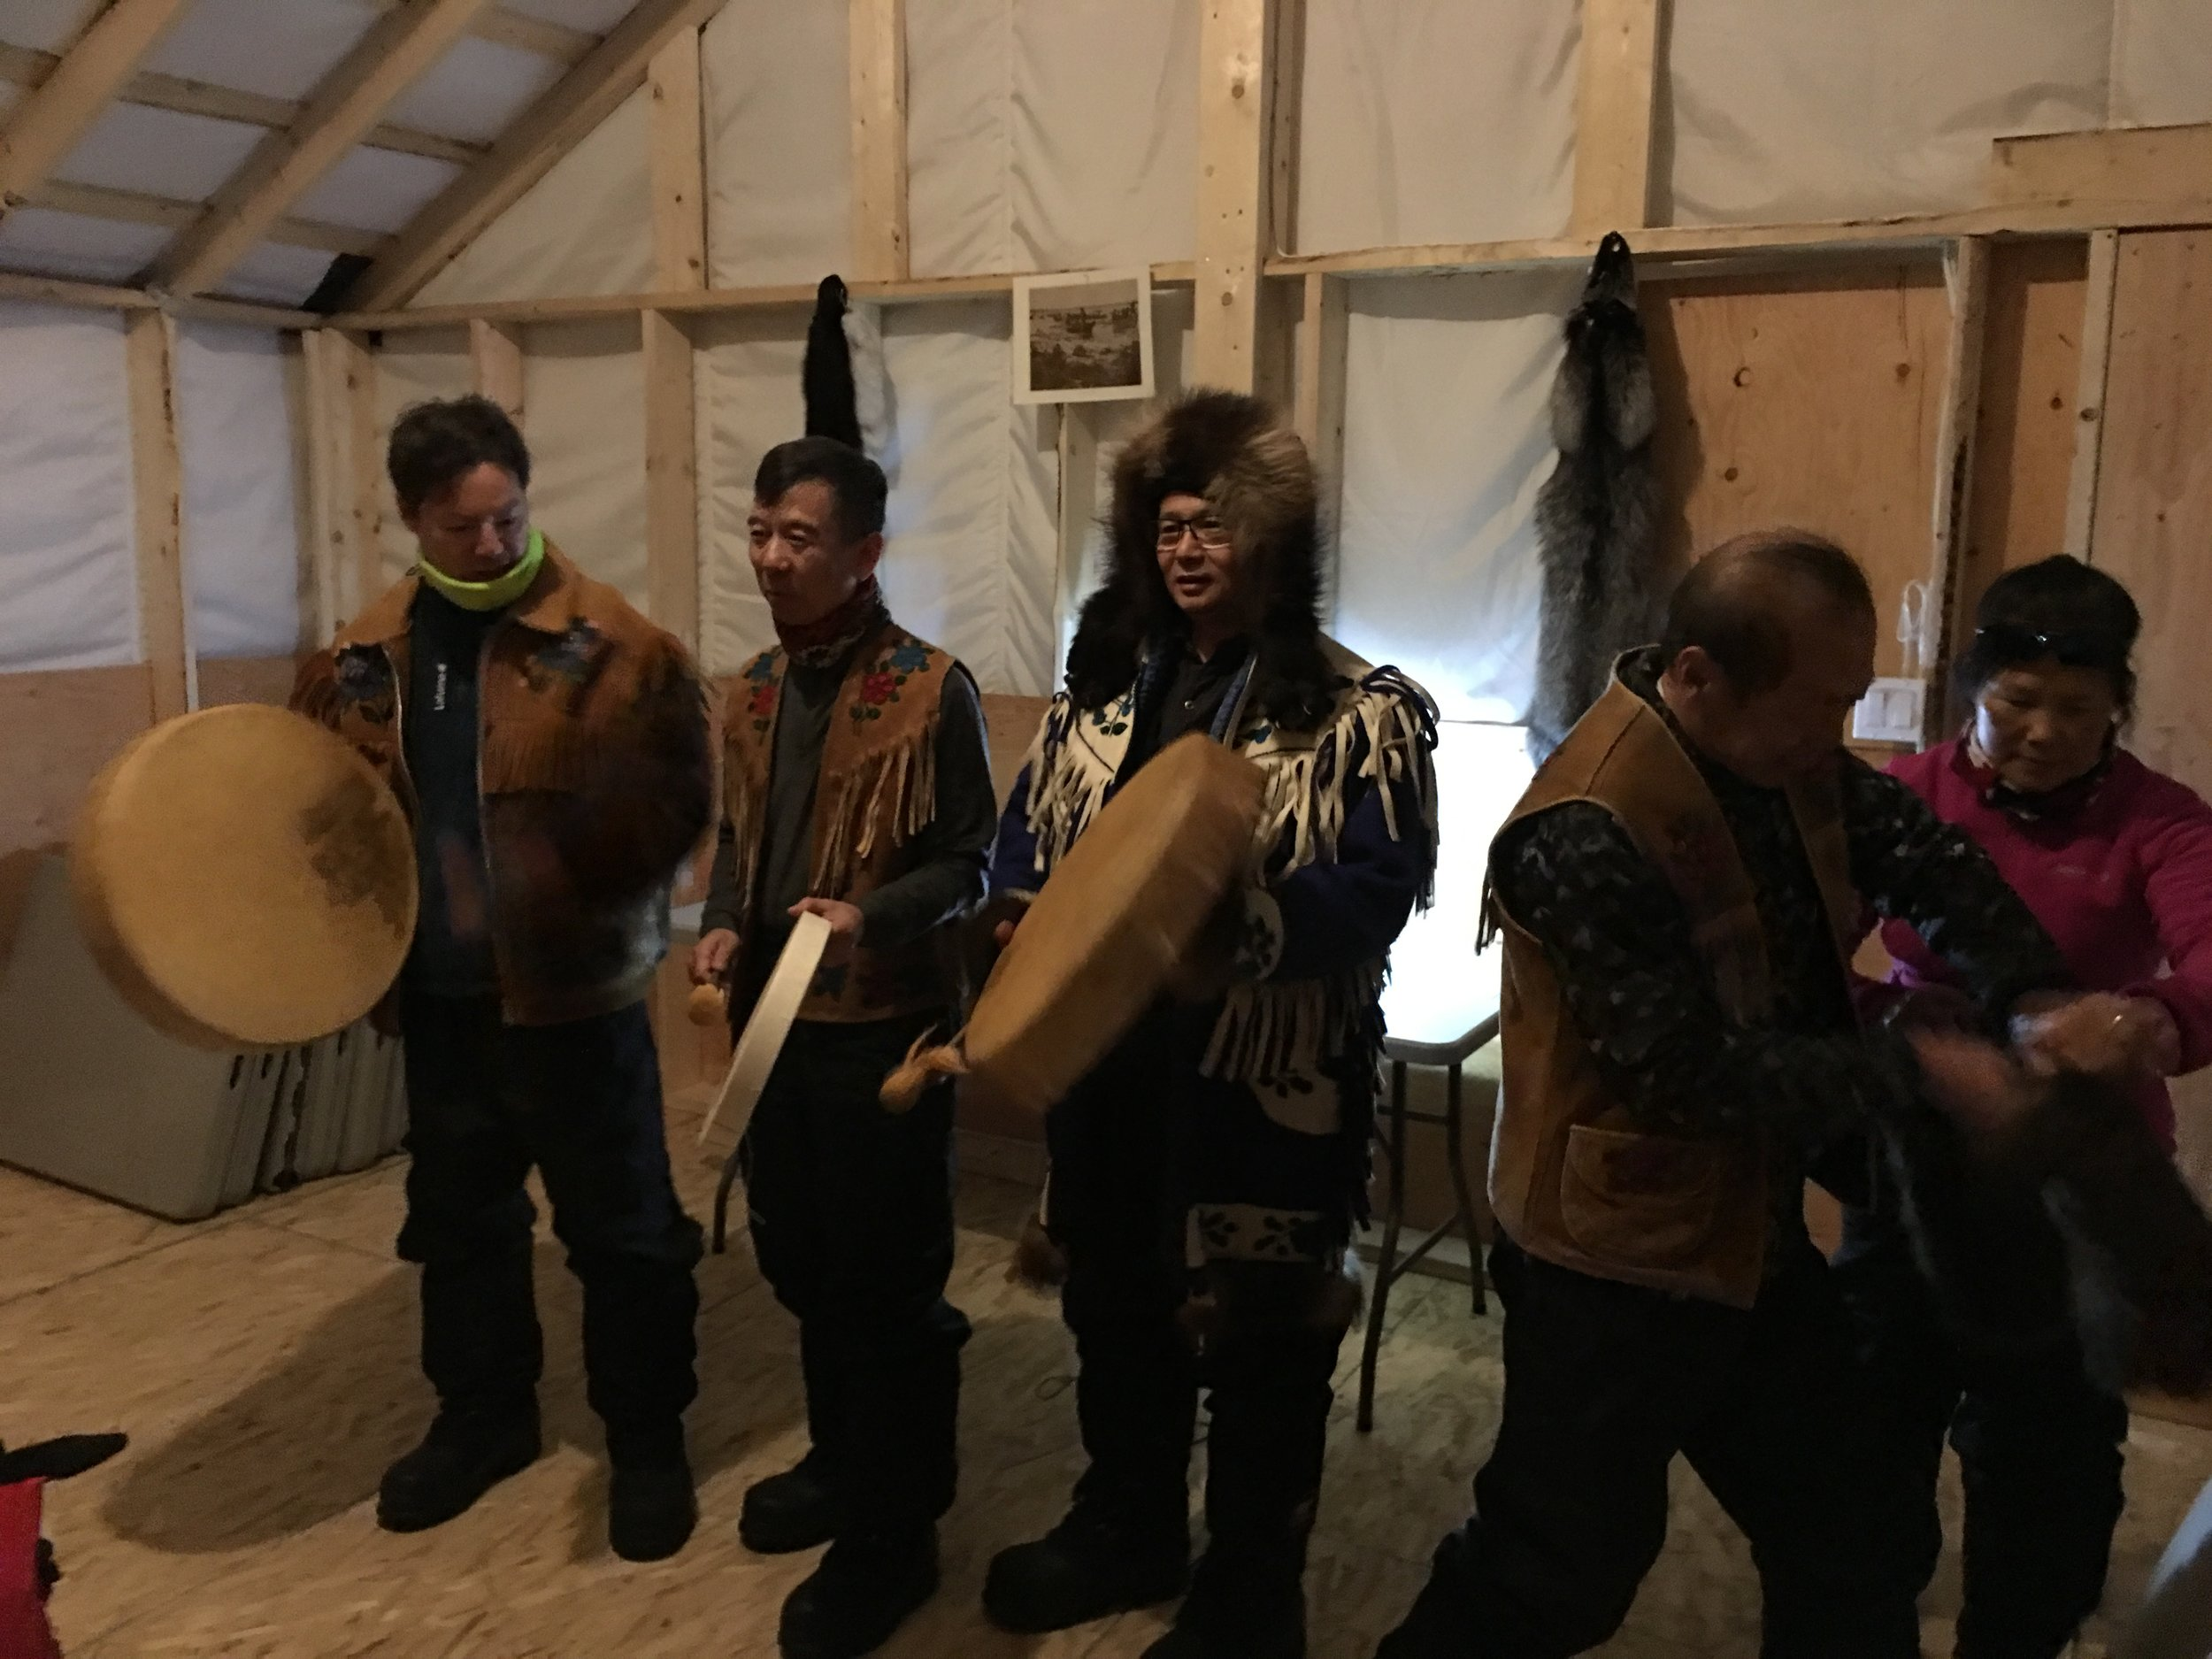 - We begin with drum song and an introduction of our Ancestor's history and way of survival in one of the tents they would have lived in, including a trap demonstration and photo shoot with traditional Indigenous clothing and furs.